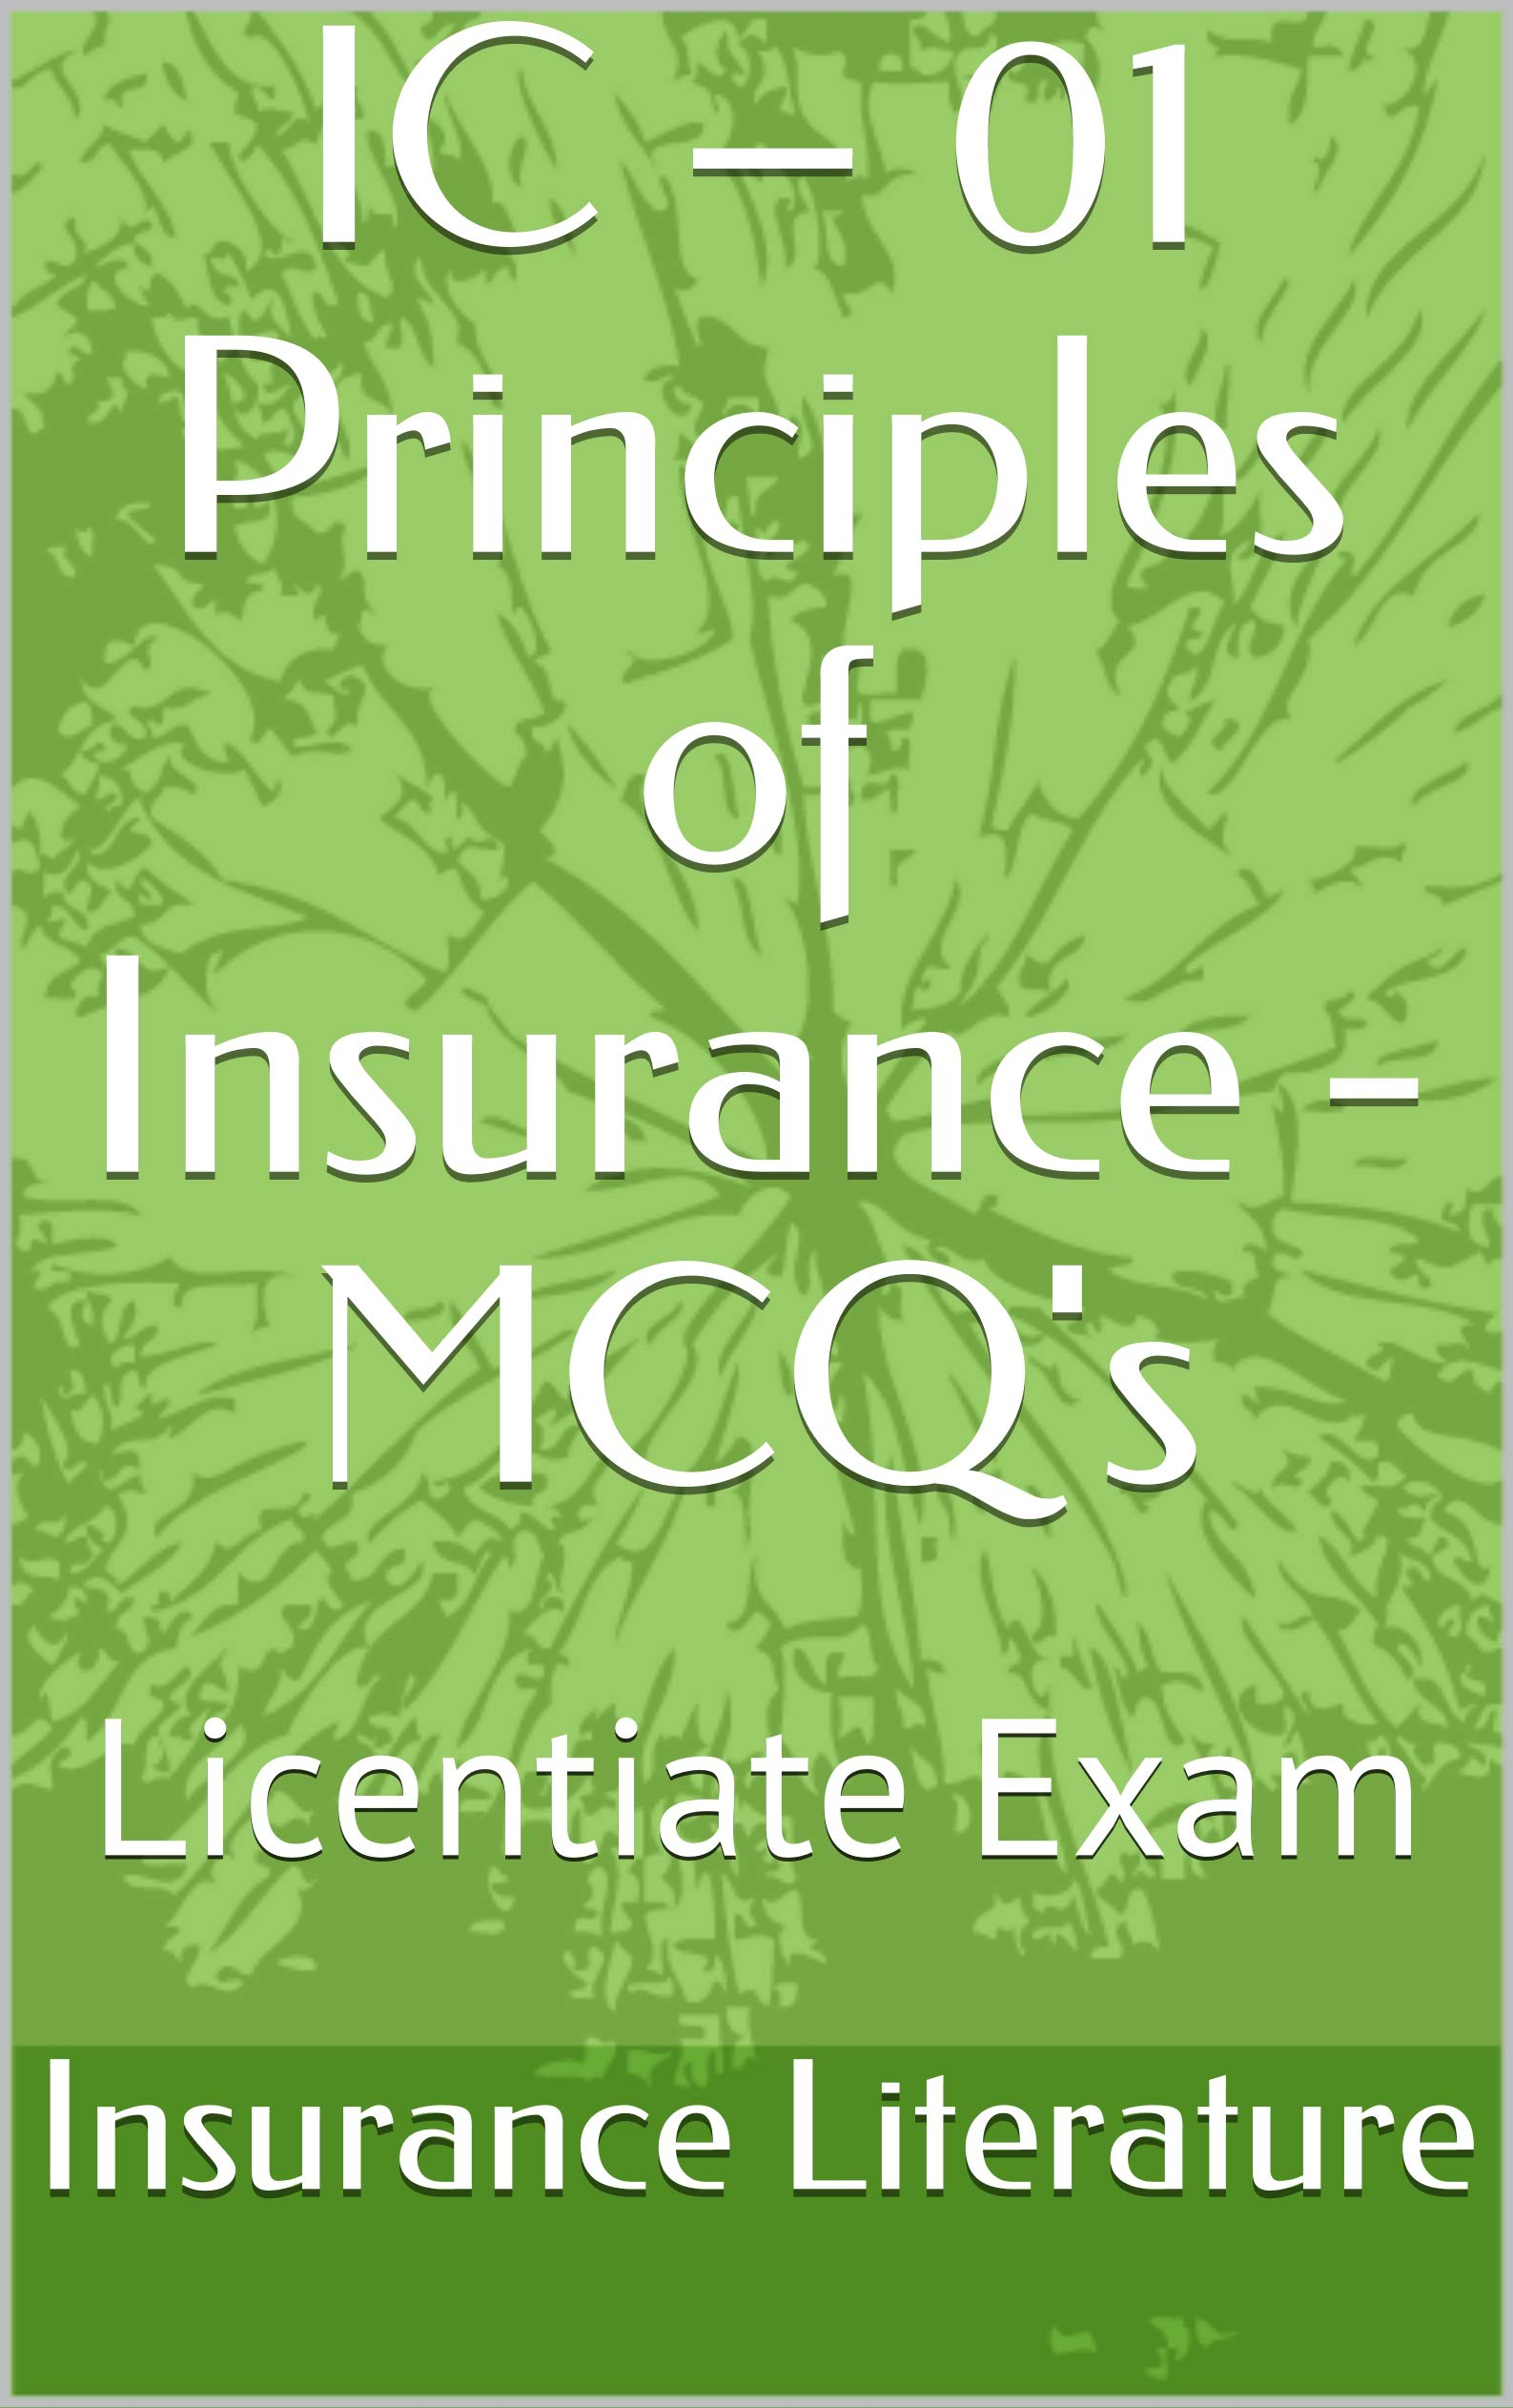 IC – 01 Principles of Insurance - MCQ's: Licentiate Exam